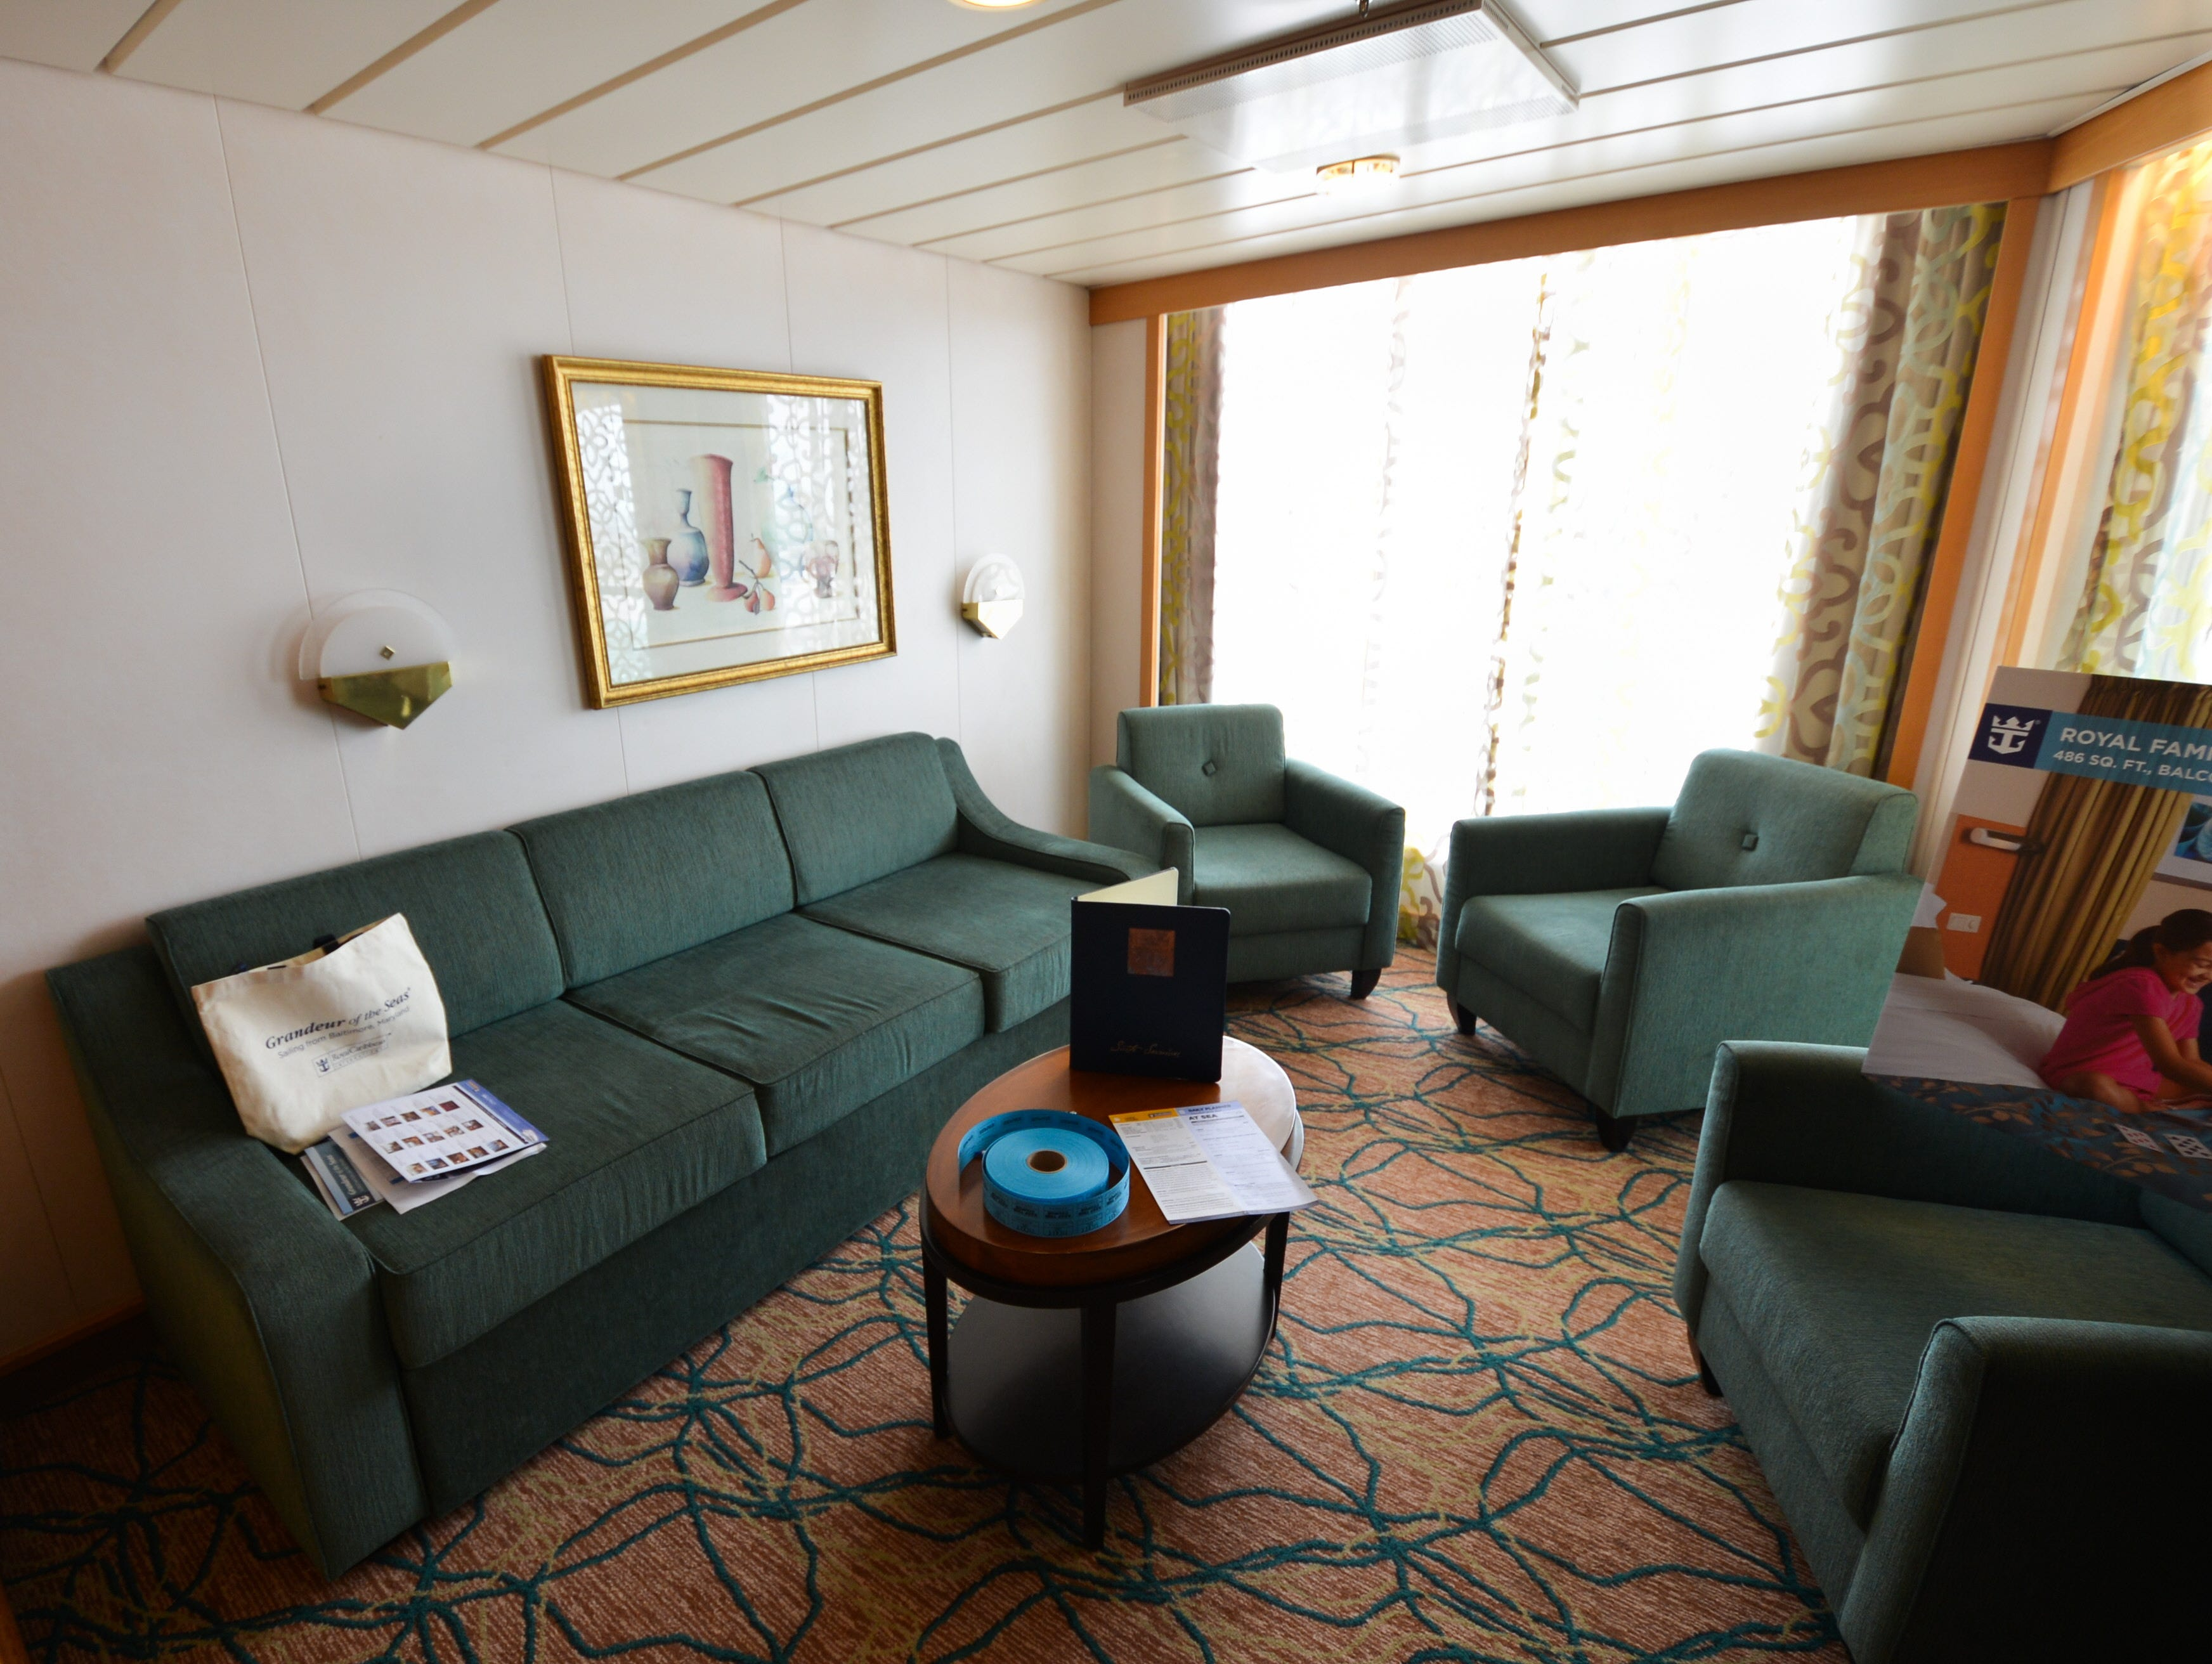 Among the larger cabins on Grandeur of the Seas are its four Royal Family Suites with Balconies, which feature two bedrooms and two bathrooms.